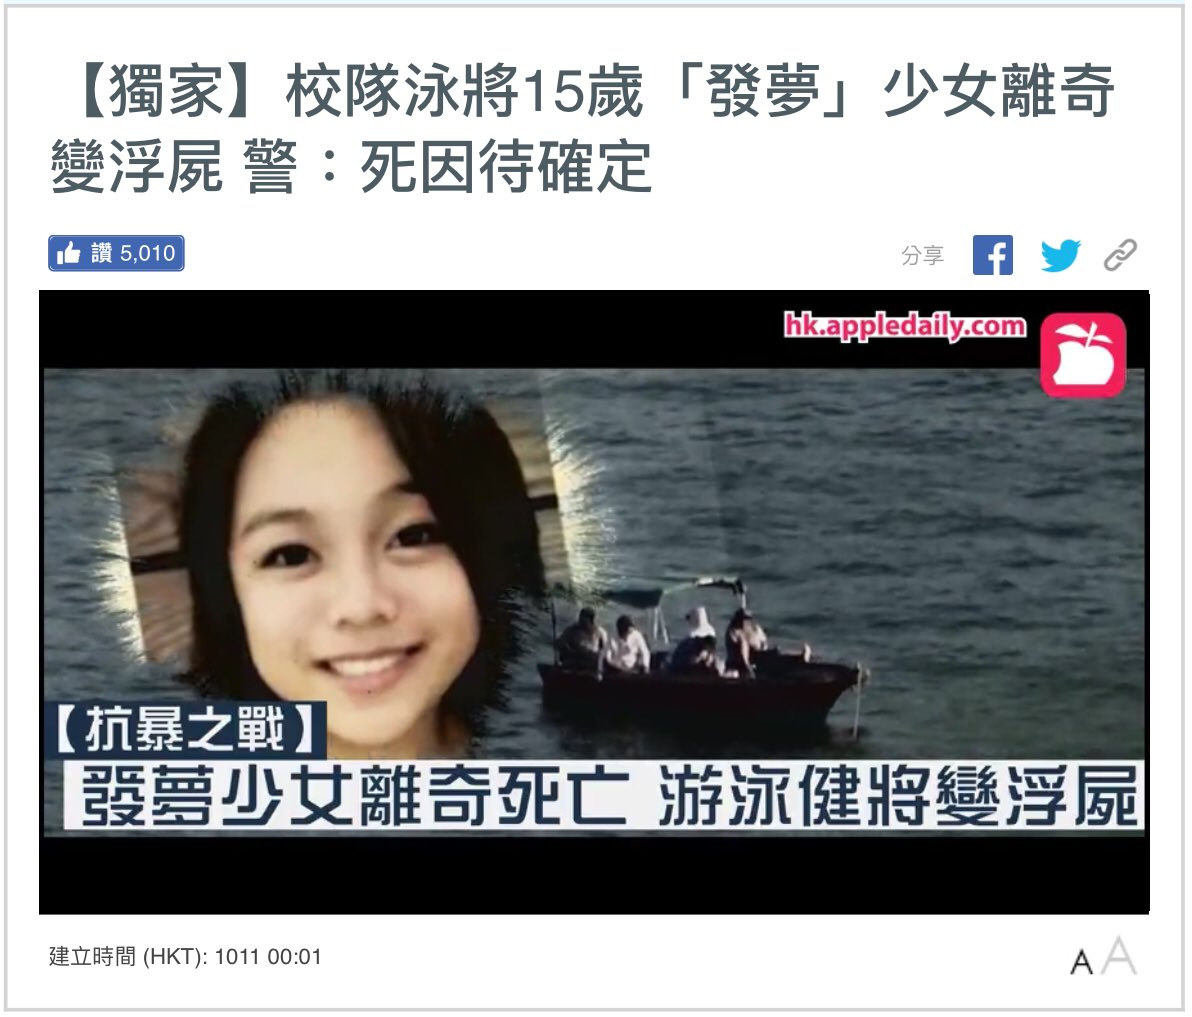 """Chrissy was a 15 year old who went missing on 9/19 and her dead body was found in the sea days later on 9/22. Being a champion swimmer on her school's swim team, how can she drown so easily? Police again claims it was an """"unsuspicious"""" death.  #StandWithHongKong #PoliceBrutality"""